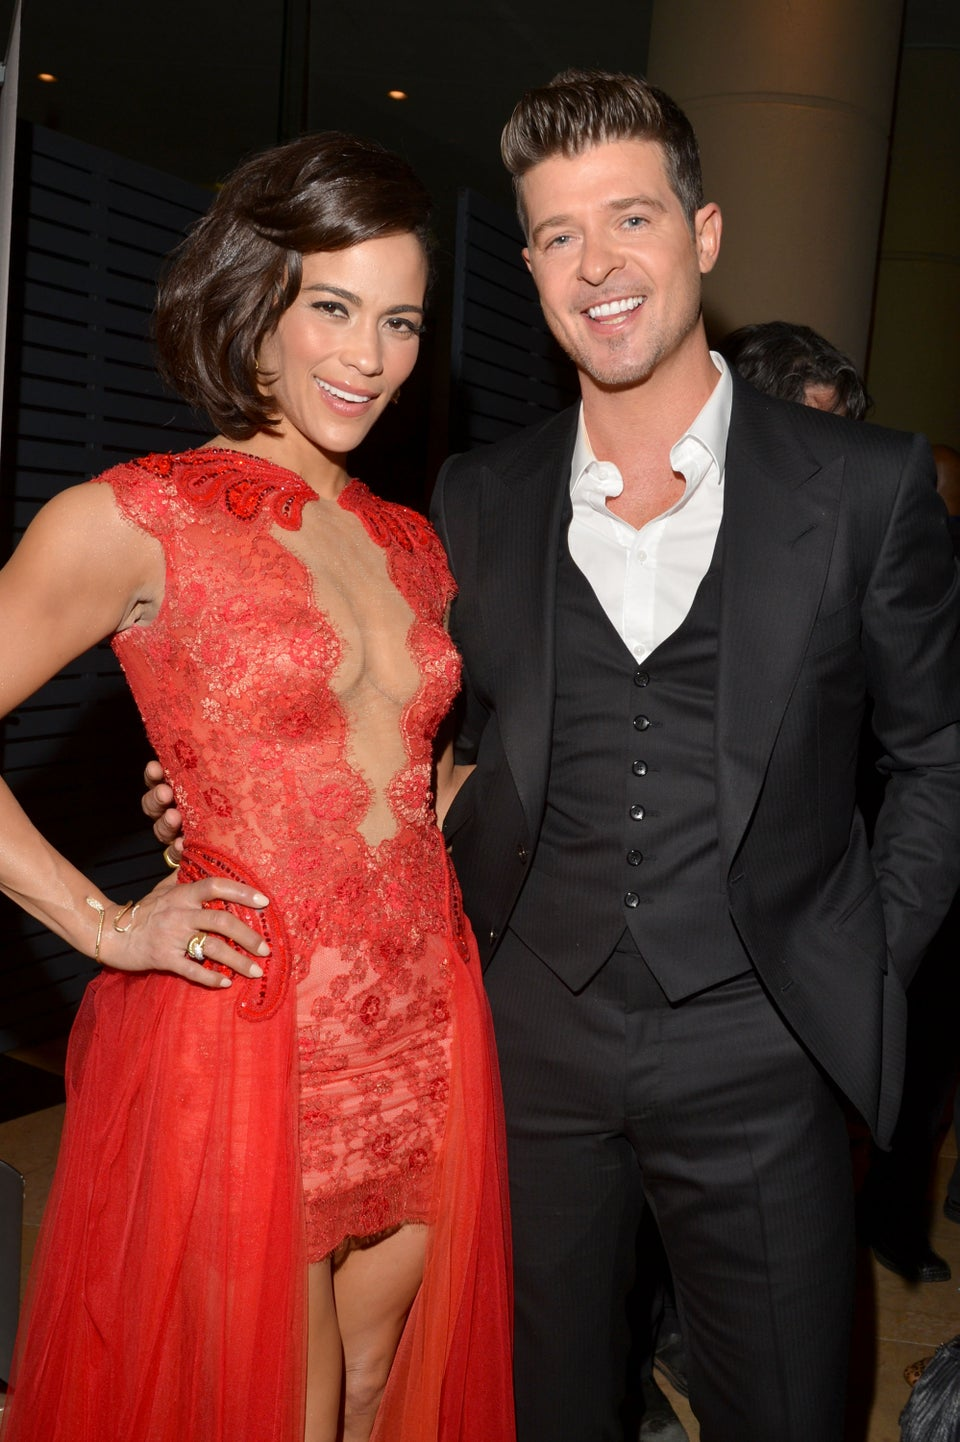 Paula Patton Accuses Robin Thicke Of Abuse, Addiction And Infidelity In Explosive Court Documents